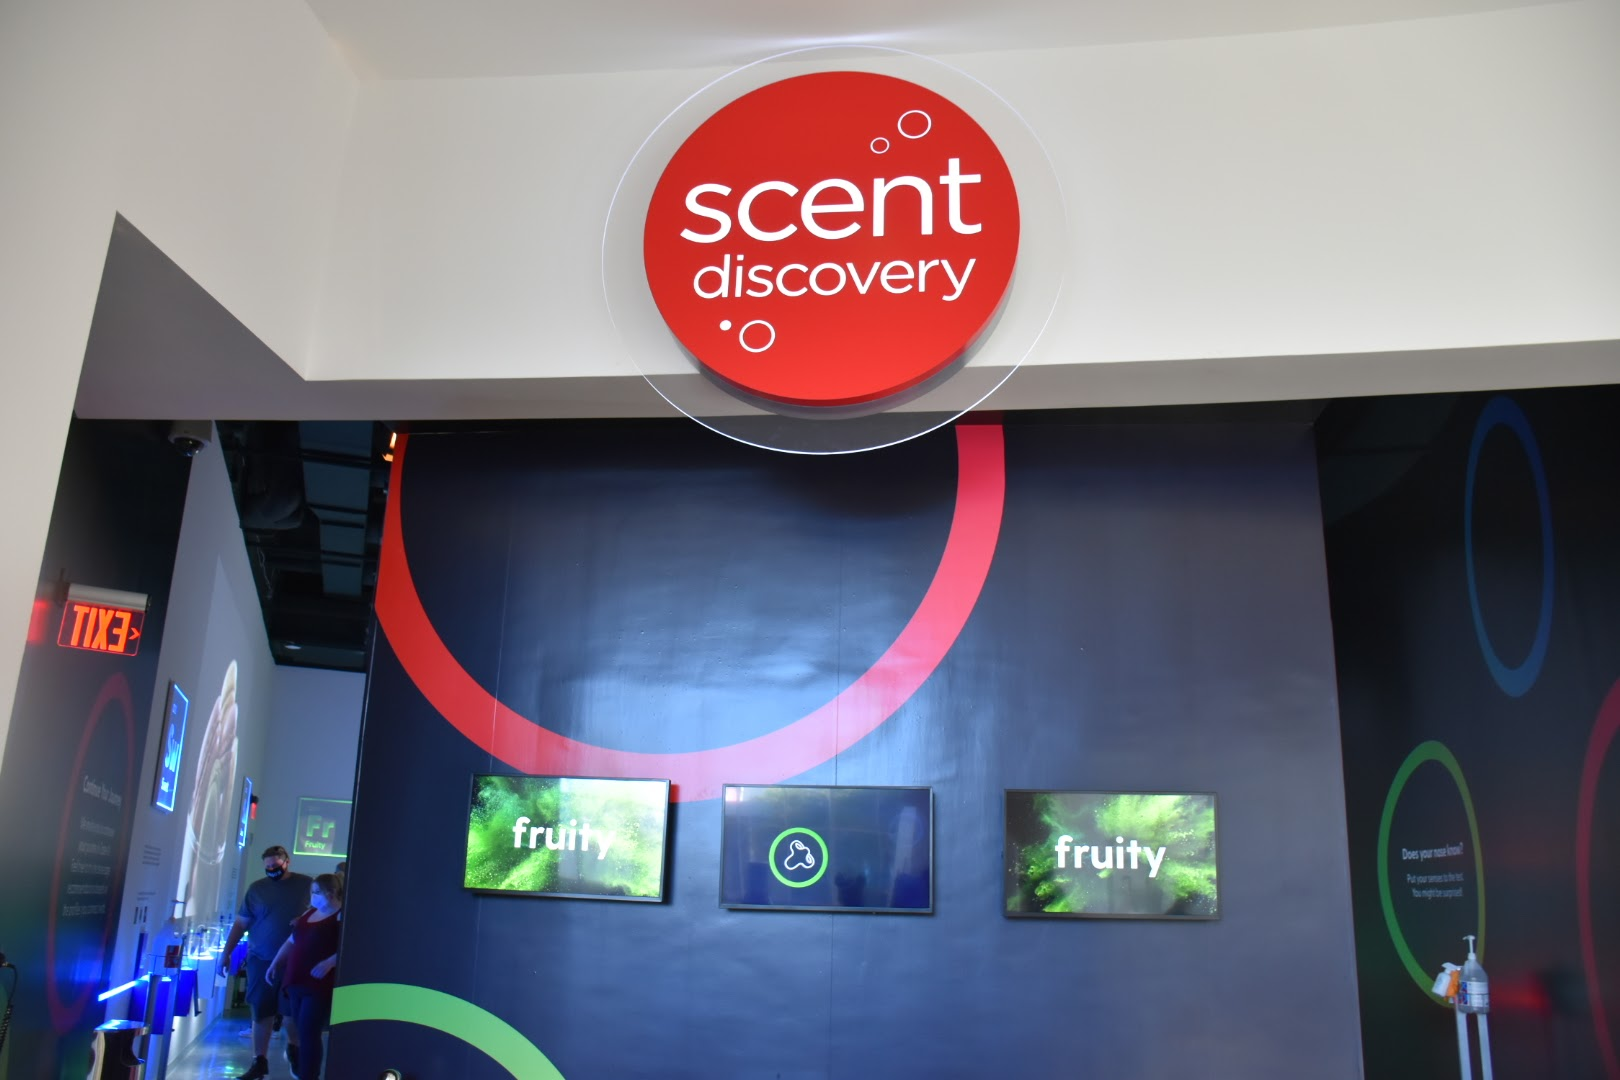 New Exhibit at World of Coca-Cola: Scent Discovery